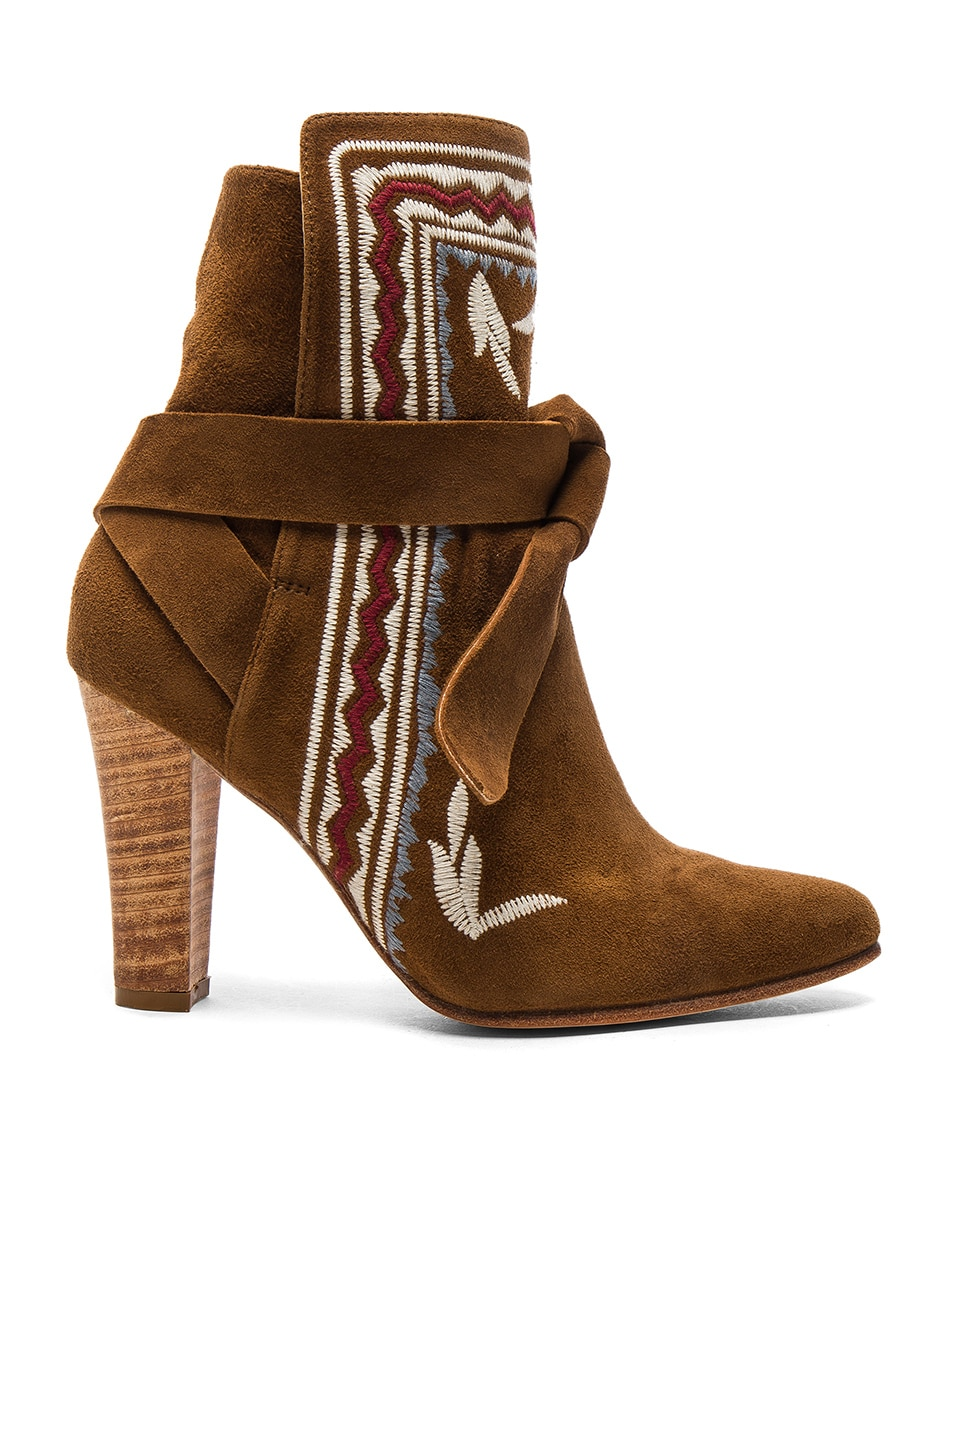 Image 1 of Ulla Johnson Embroidered Suede Aggie Booties in Saddle Suede